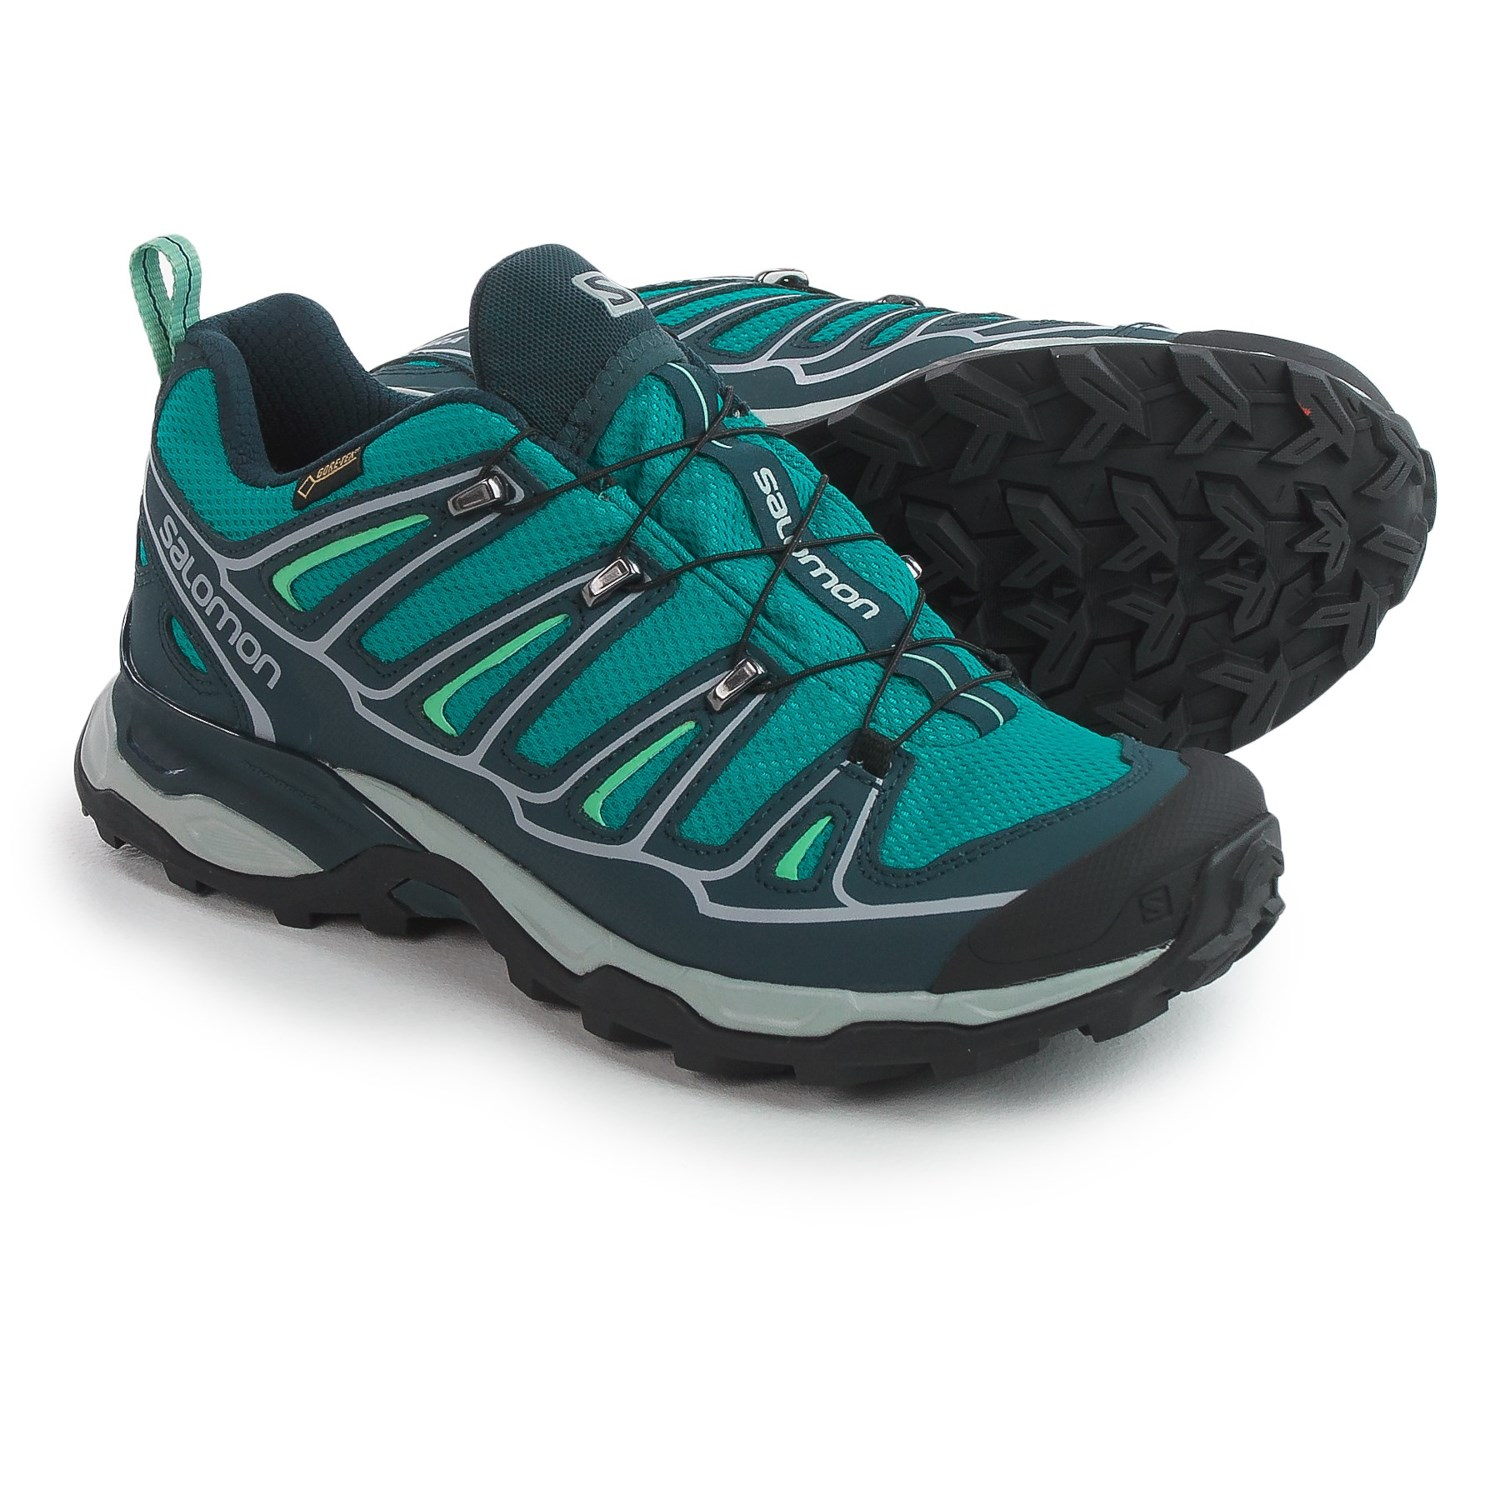 Merrell Approach Shoes Men